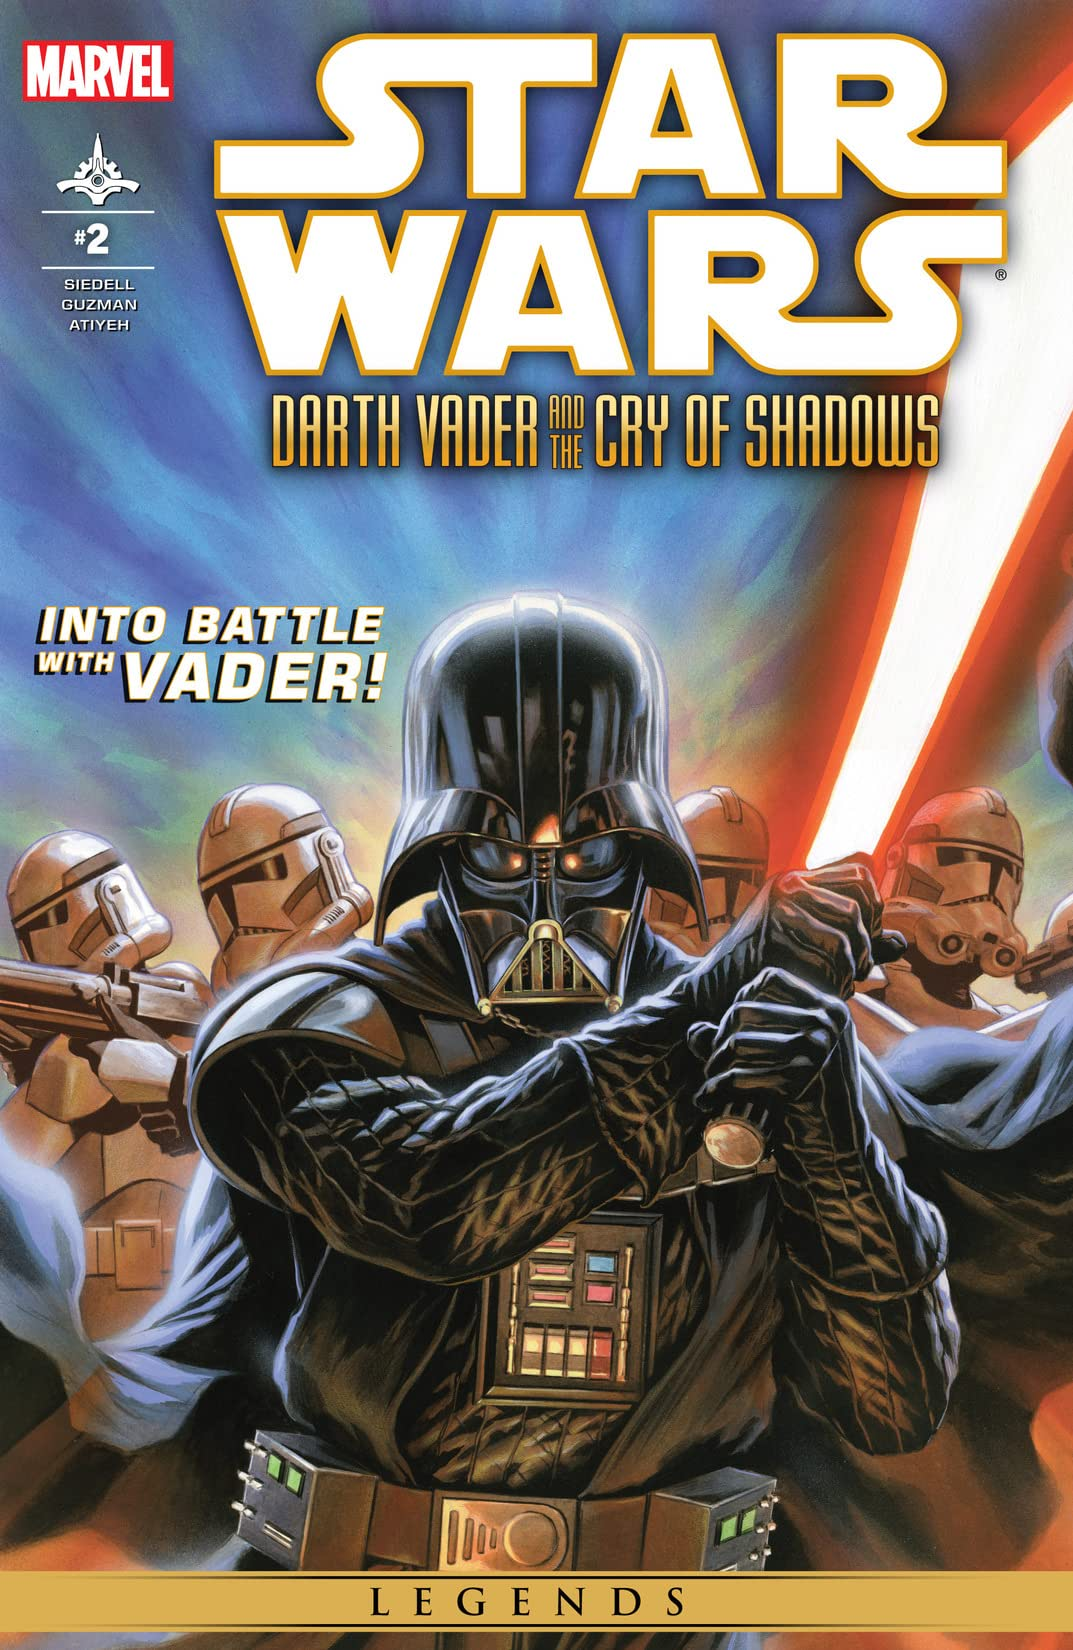 Star Wars: Darth Vader and the Cry of Shadows (2013-2014) #2 (of 5)